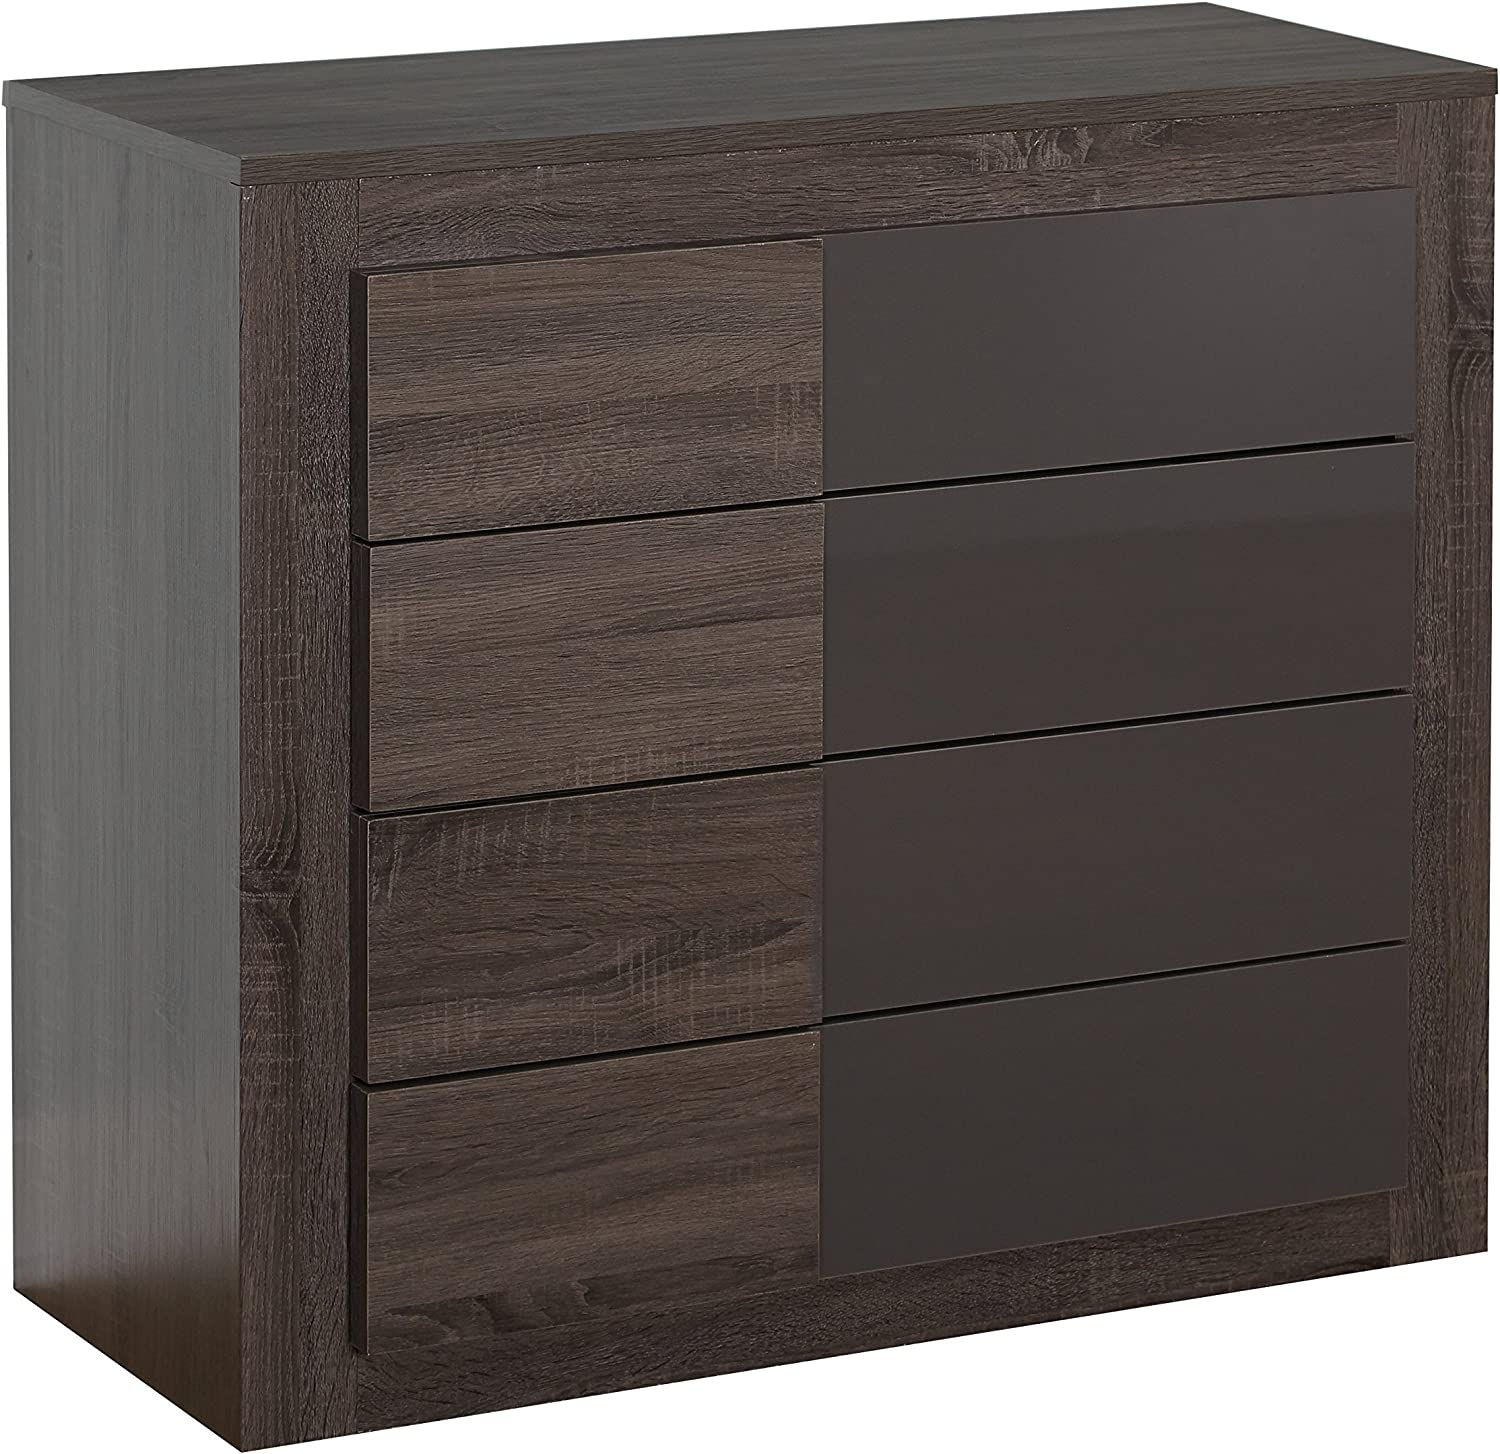 Target Marketing Systems Two-Toned Eden Drawer Chest with 4 Drawers, Dark Sonoma Oak High Gloss Gray